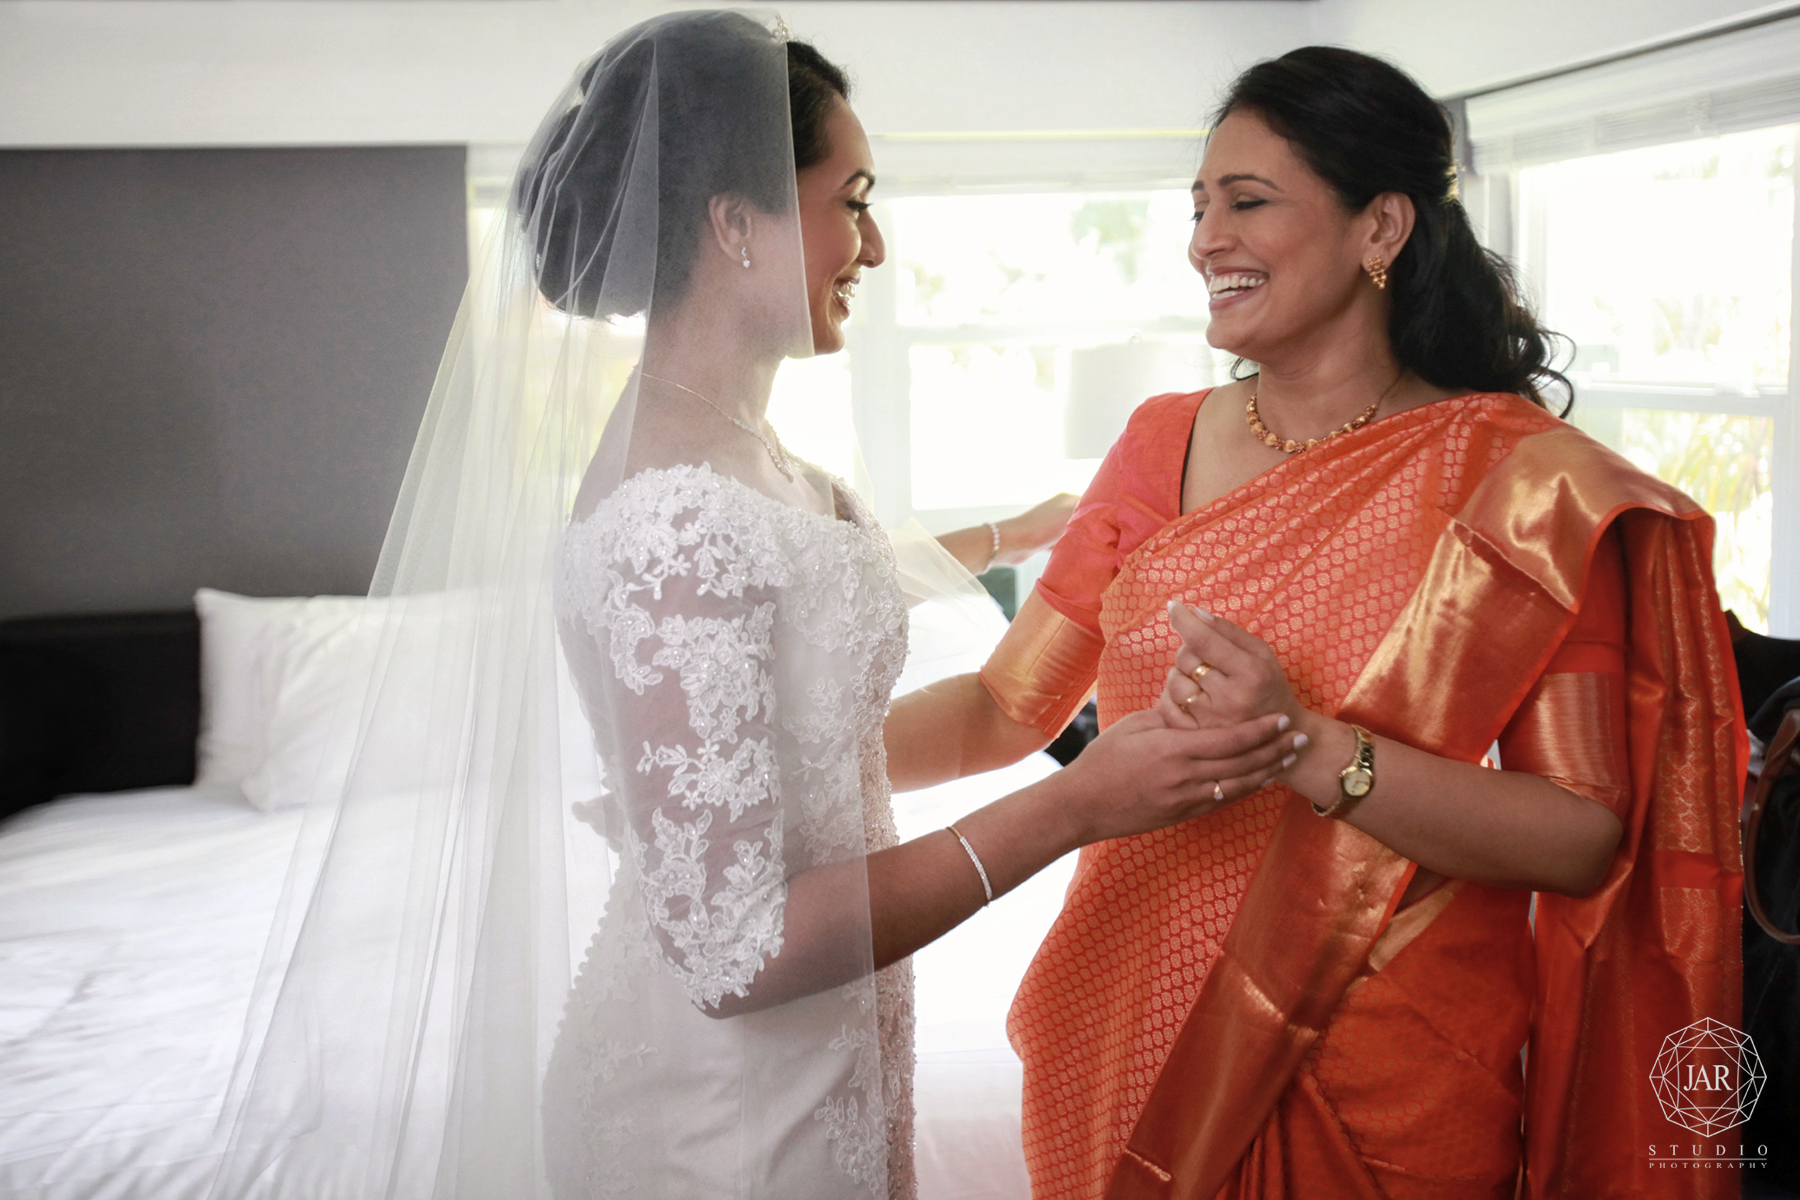 07-mother-of-the-bride-saree-indian-wedding-ideas-orlando-jarstudio-photography.jpg